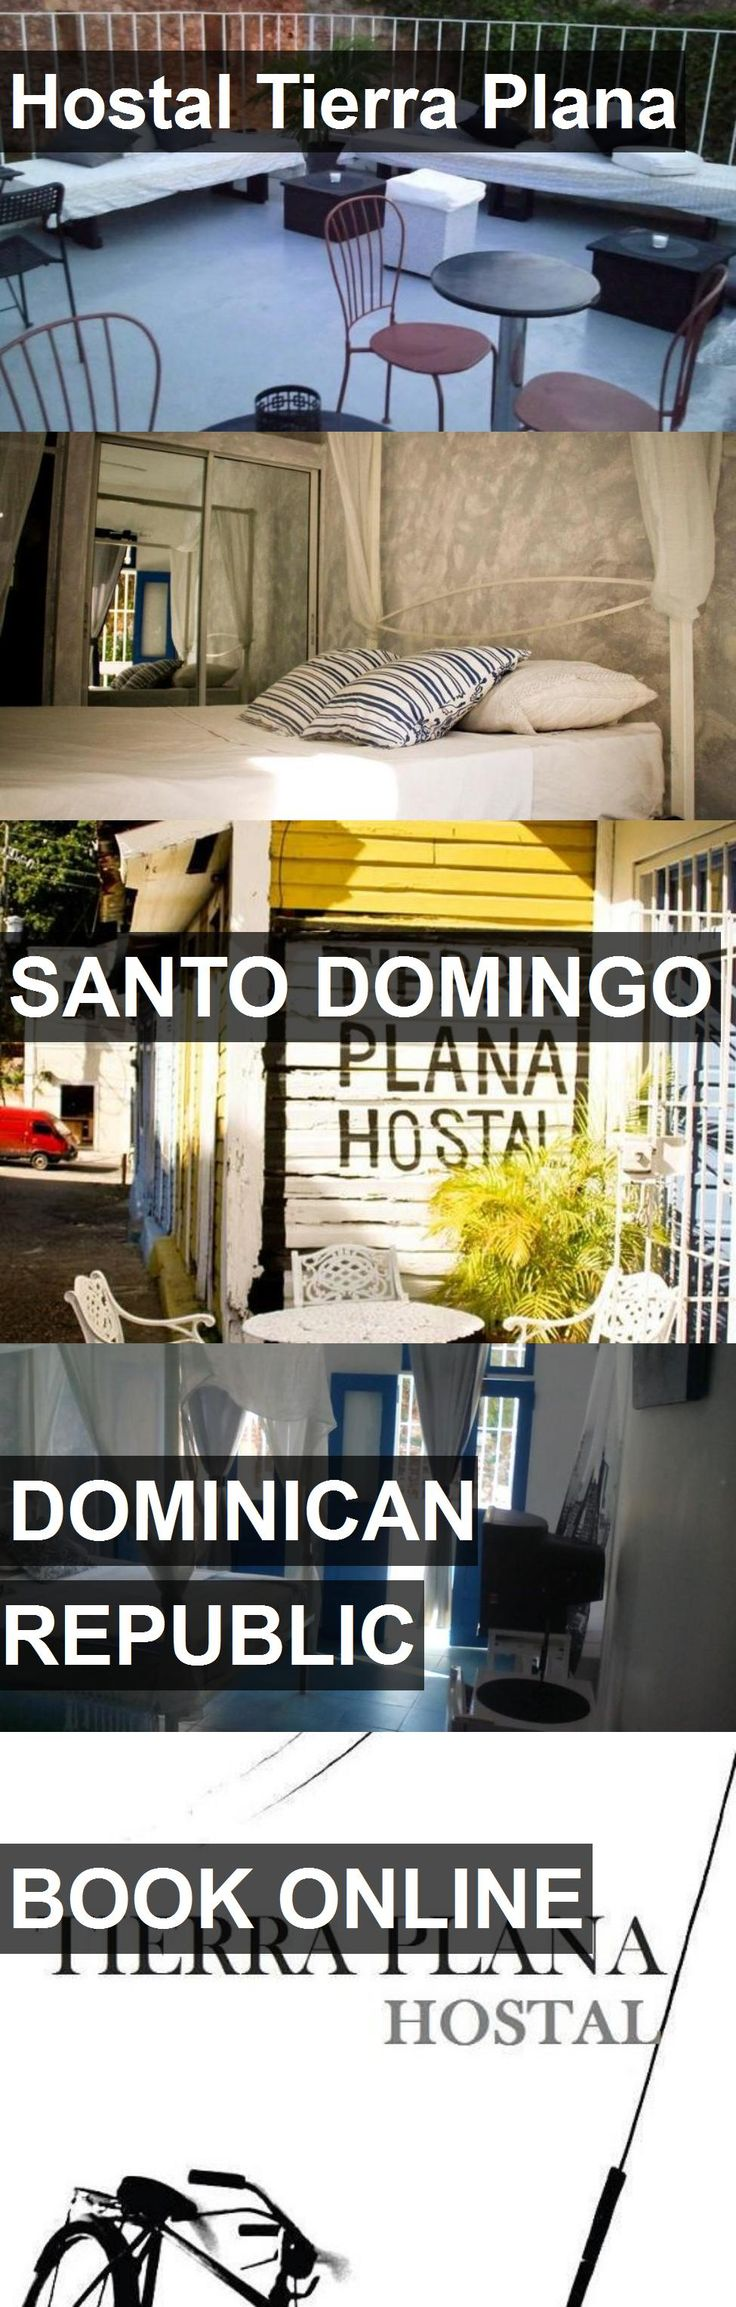 Hotel Hostal Tierra Plana in Santo Domingo, Dominican Republic. For more information, photos, reviews and best prices please follow the link. #DominicanRepublic #SantoDomingo #travel #vacation #hotel